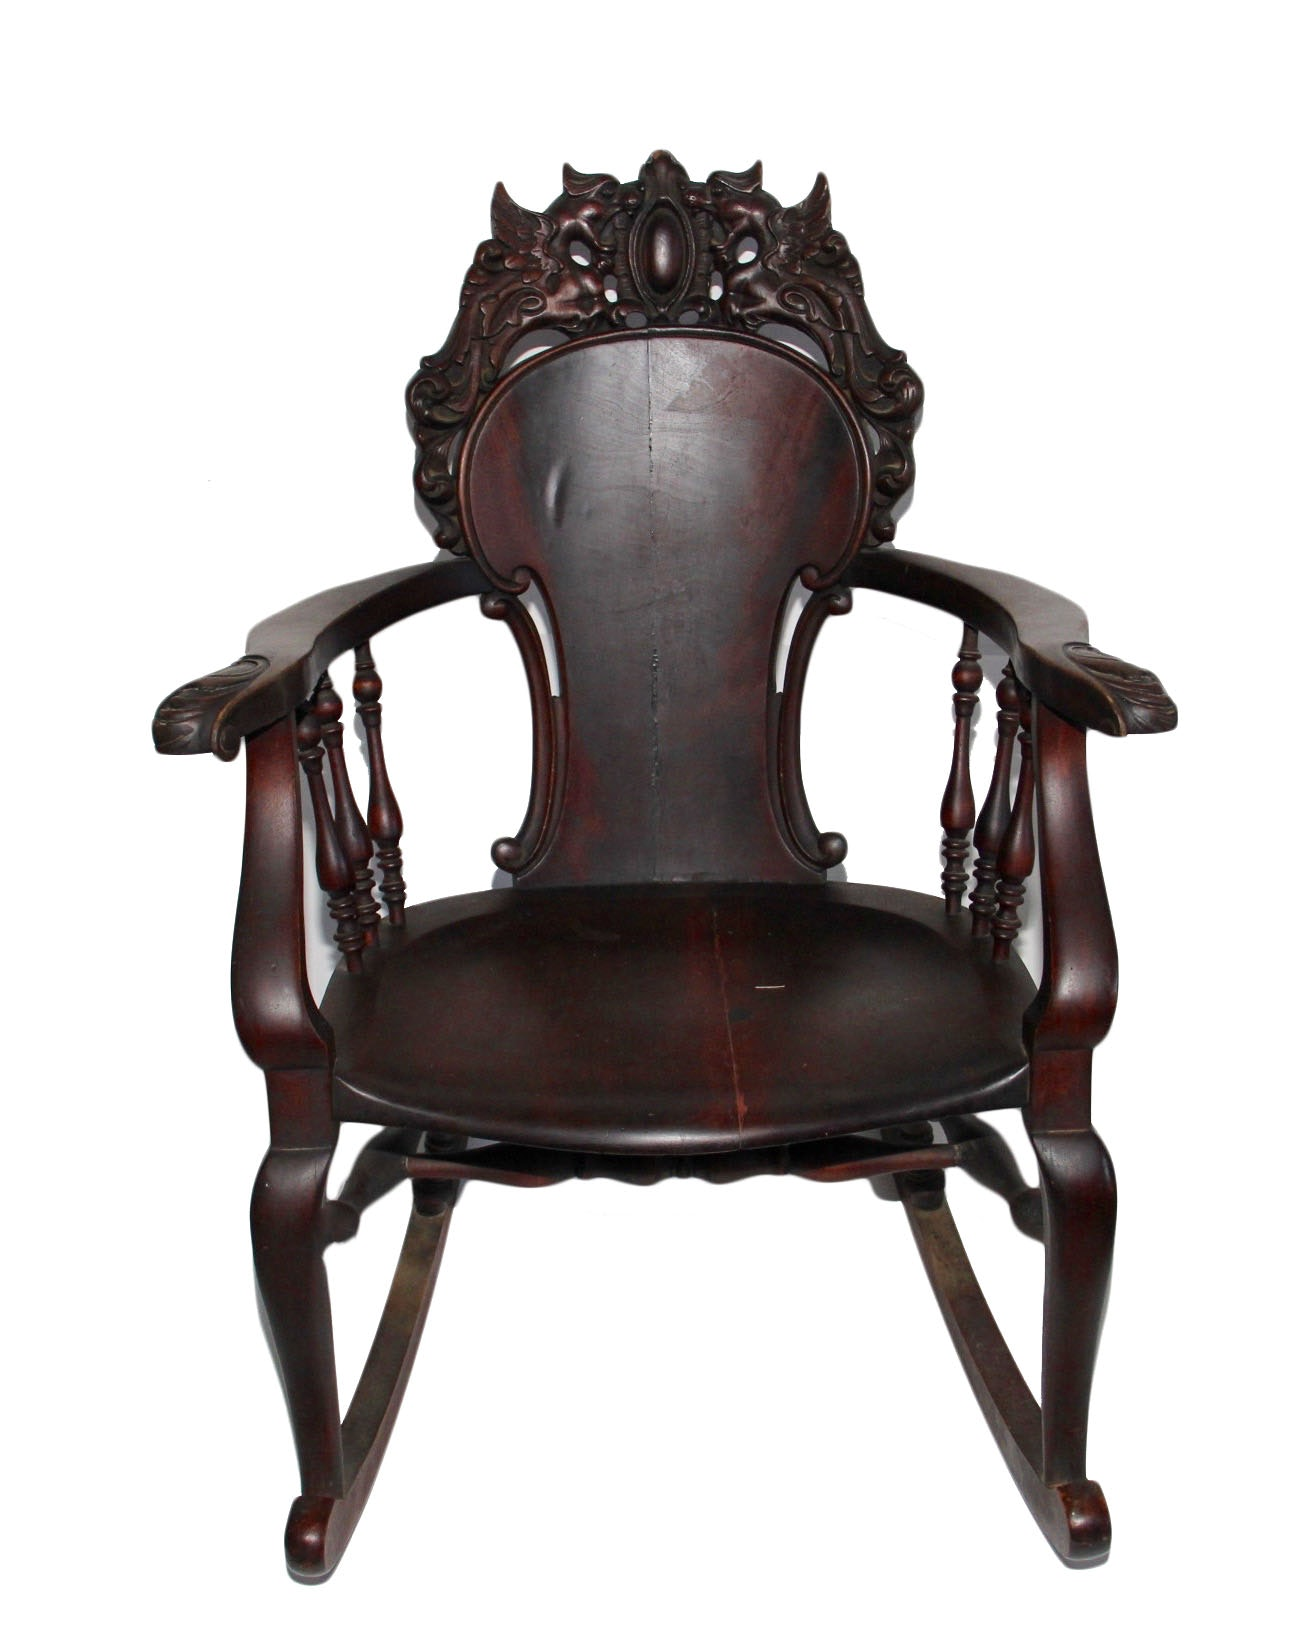 Medieval Style Wood Rocking Chair ...  sc 1 st  Everything But The House : medieval chair - lorbestier.org